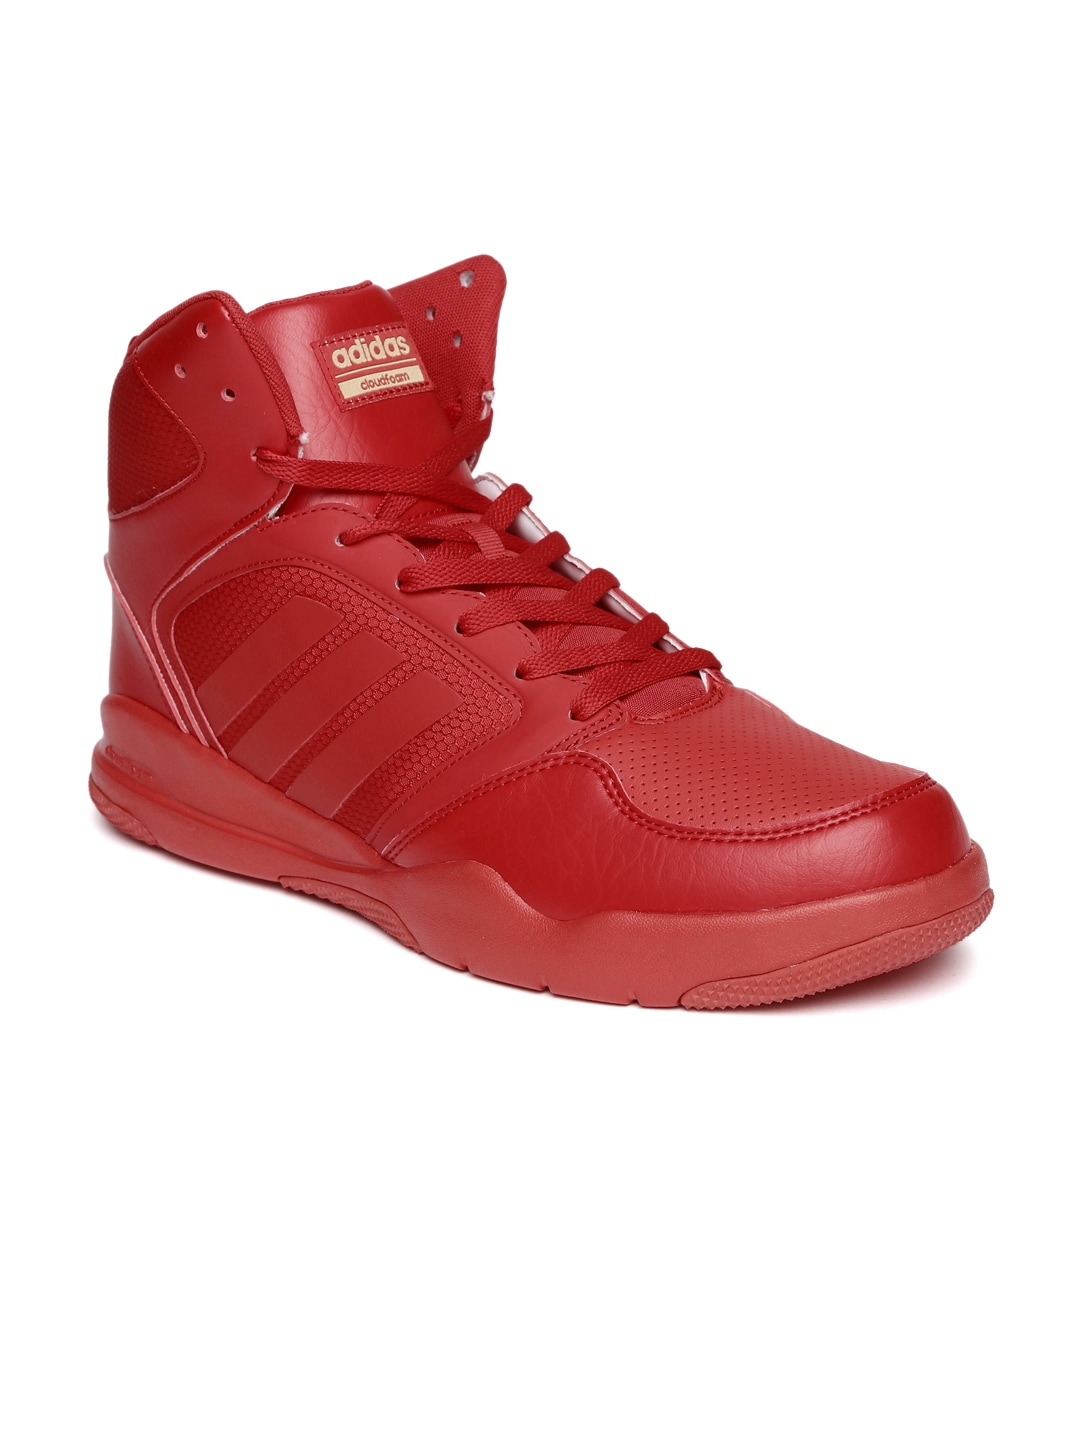 d5d9432d8480 ... free shipping adidas neo red shoes buy adidas neo red shoes online in  india 5ca42 25405